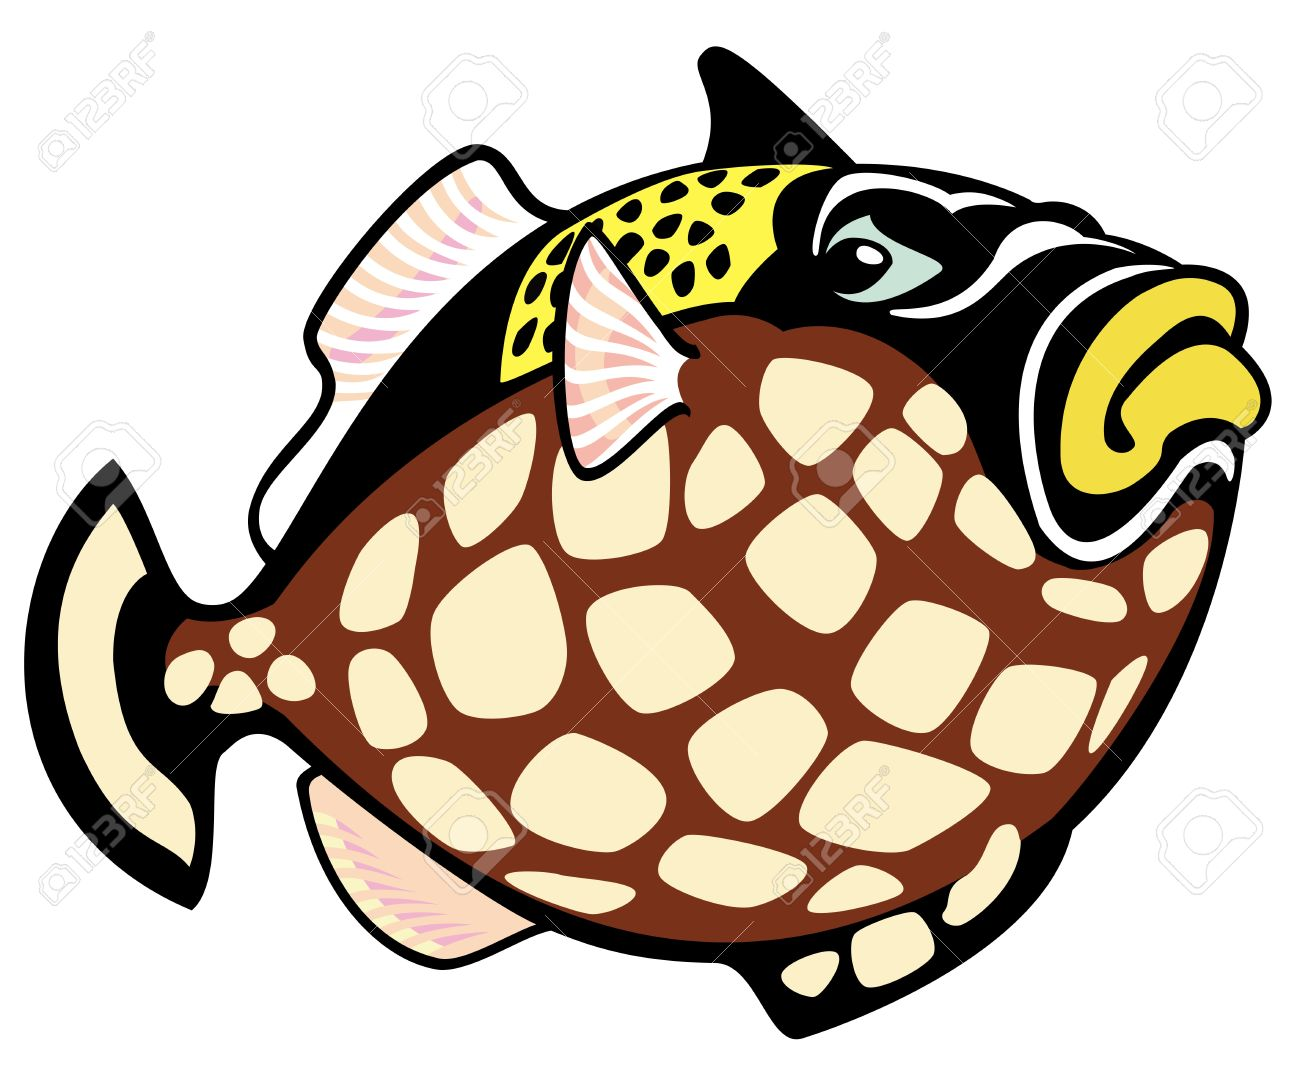 clown trigger fish,cartoon picture isolated on white background,vector illustration Stock Vector - 17272630